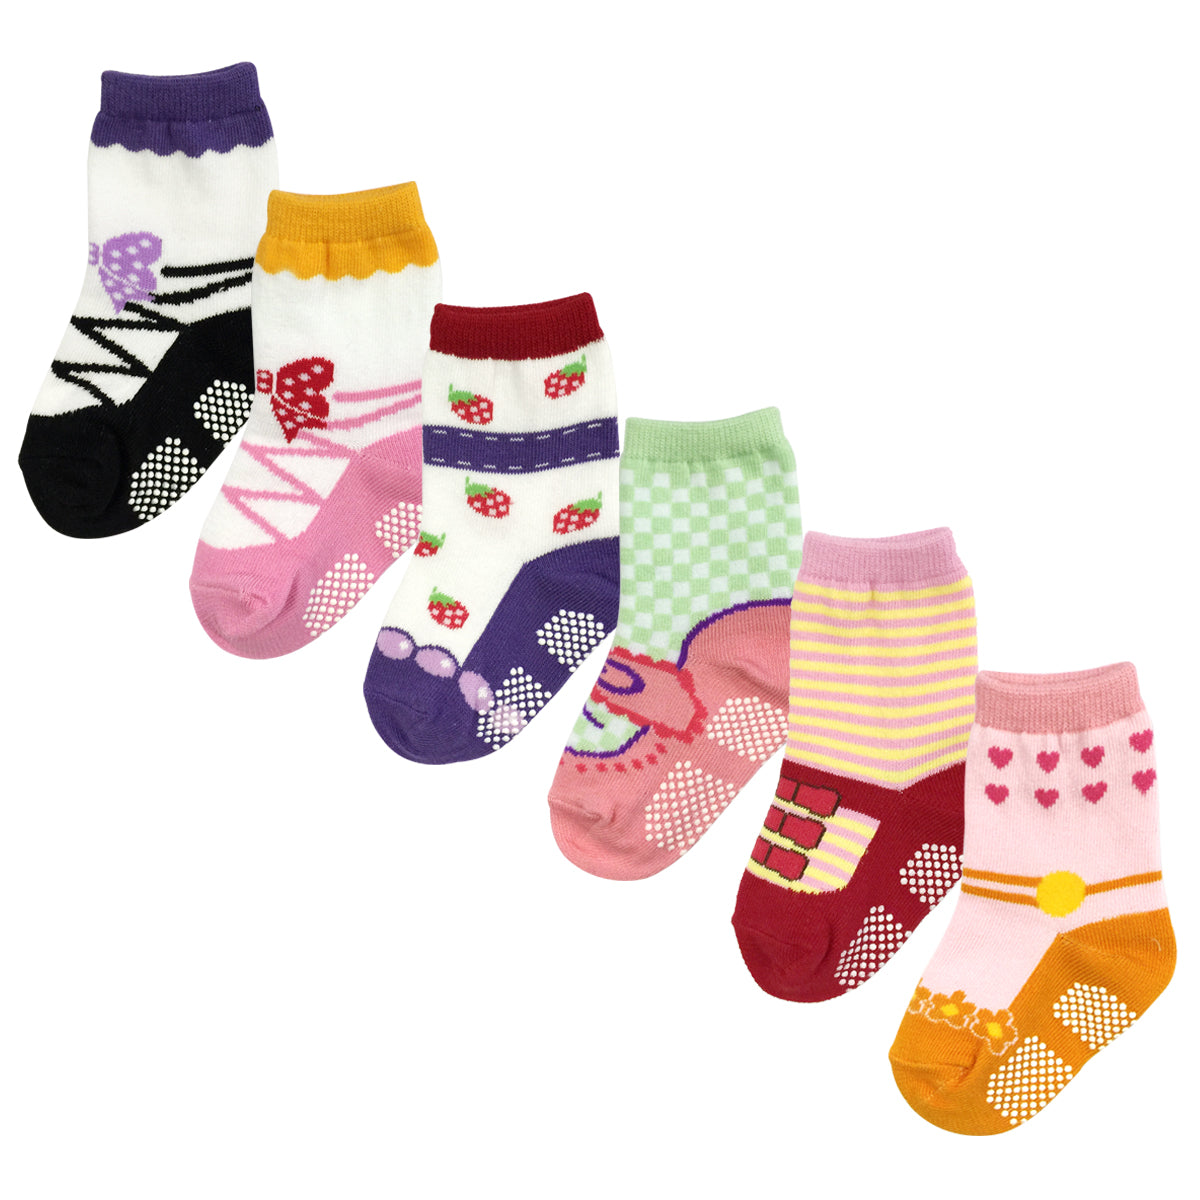 Wrapables Cutie Pie Mary Jane Non-Skid Socks (Set of 6), Set 1